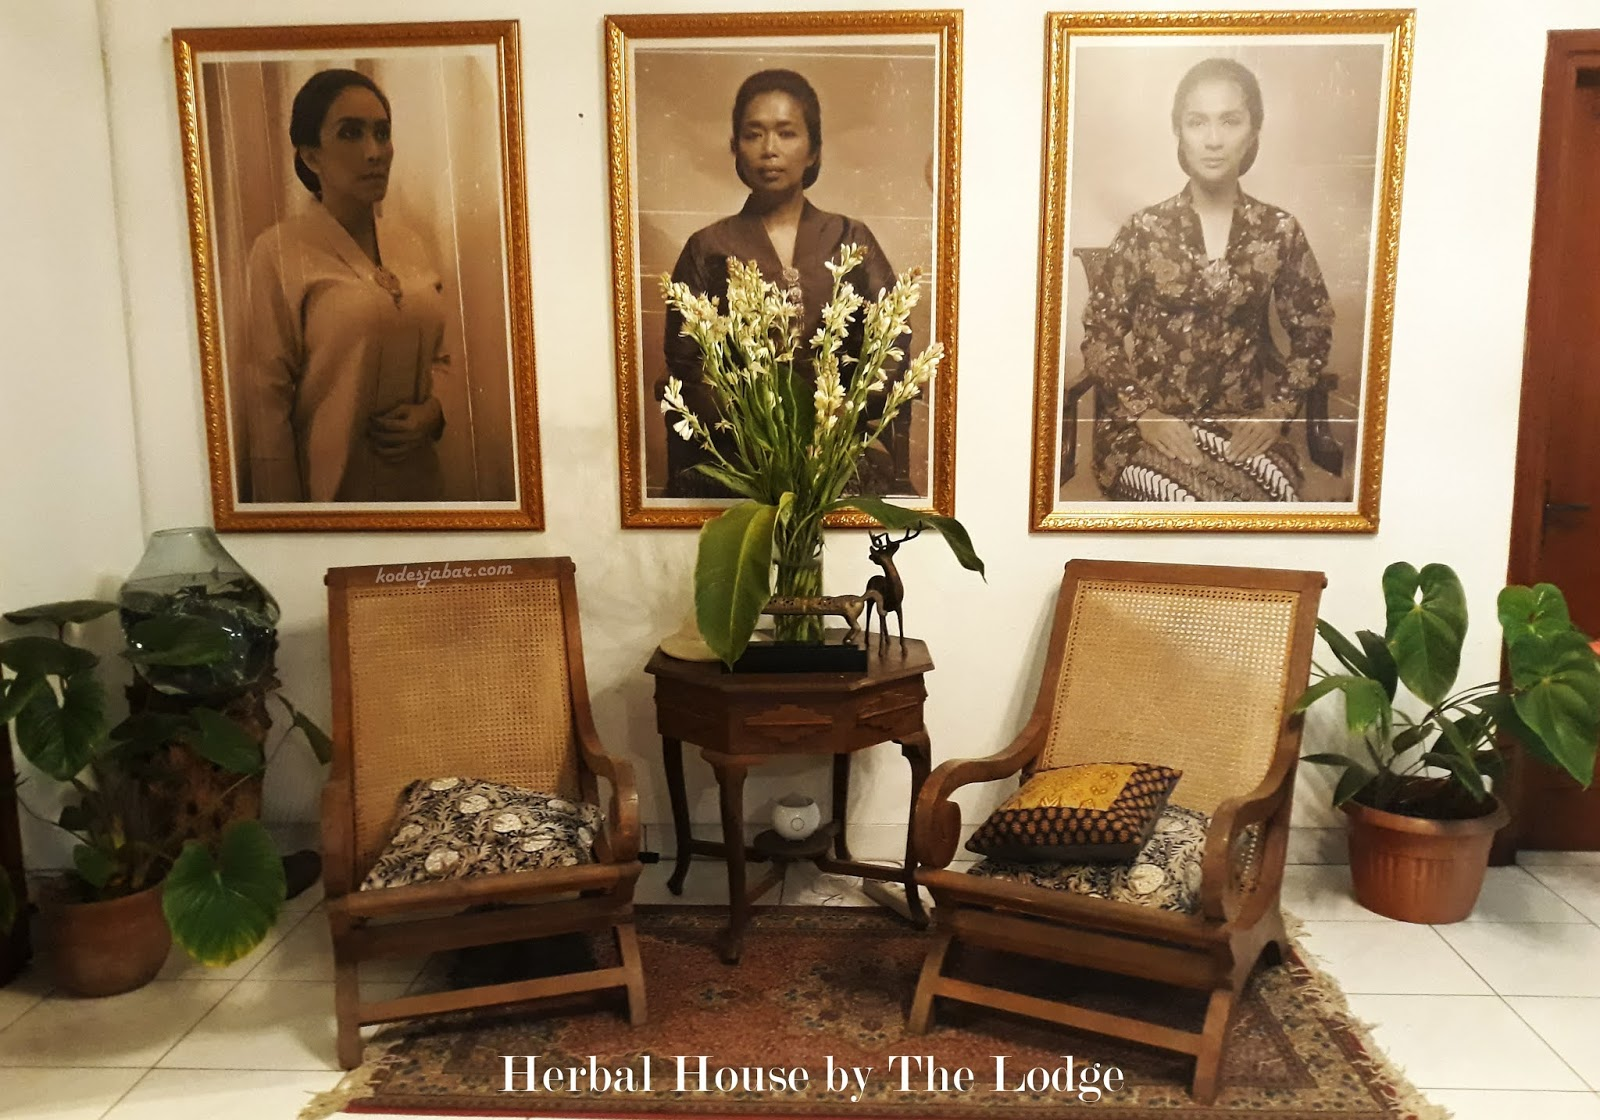 Herbal House by The Lodge, Tempat Kuliner Herbal Paling Enak di Bandung